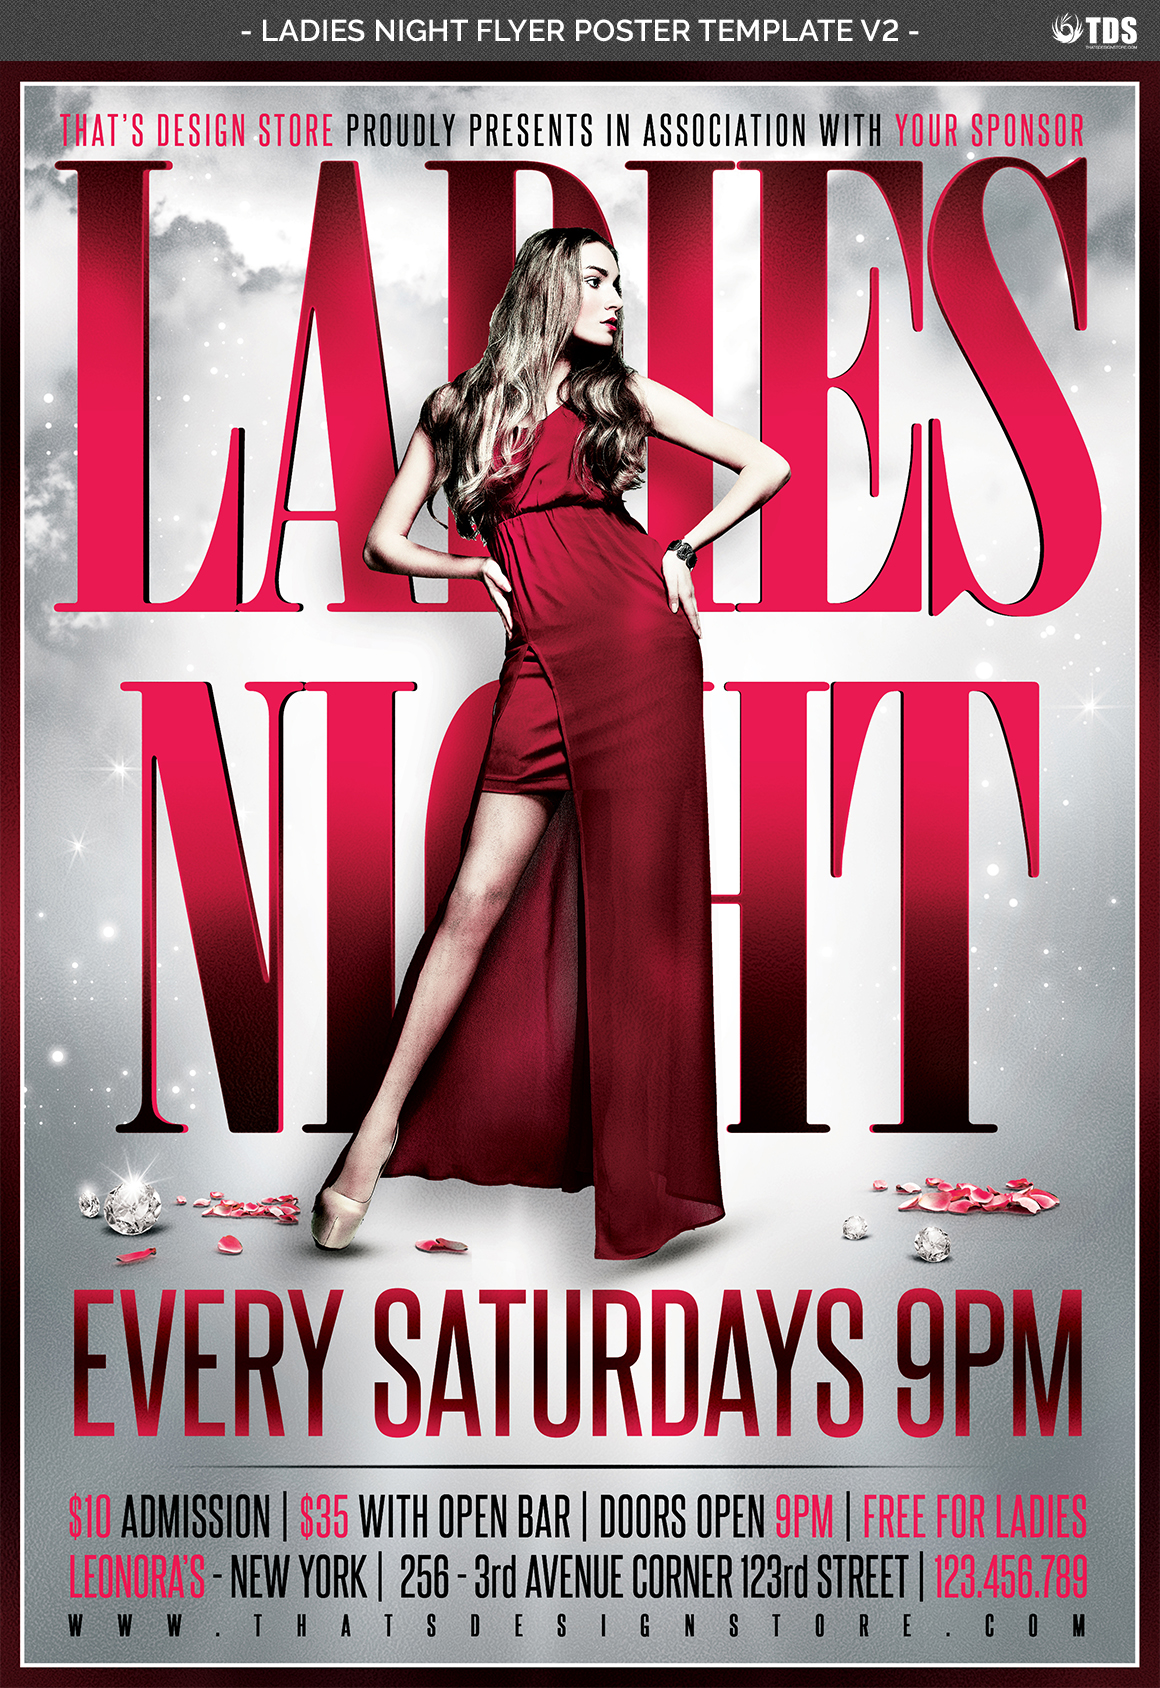 Ladies Night Flyer Poster Template V2 example image 4